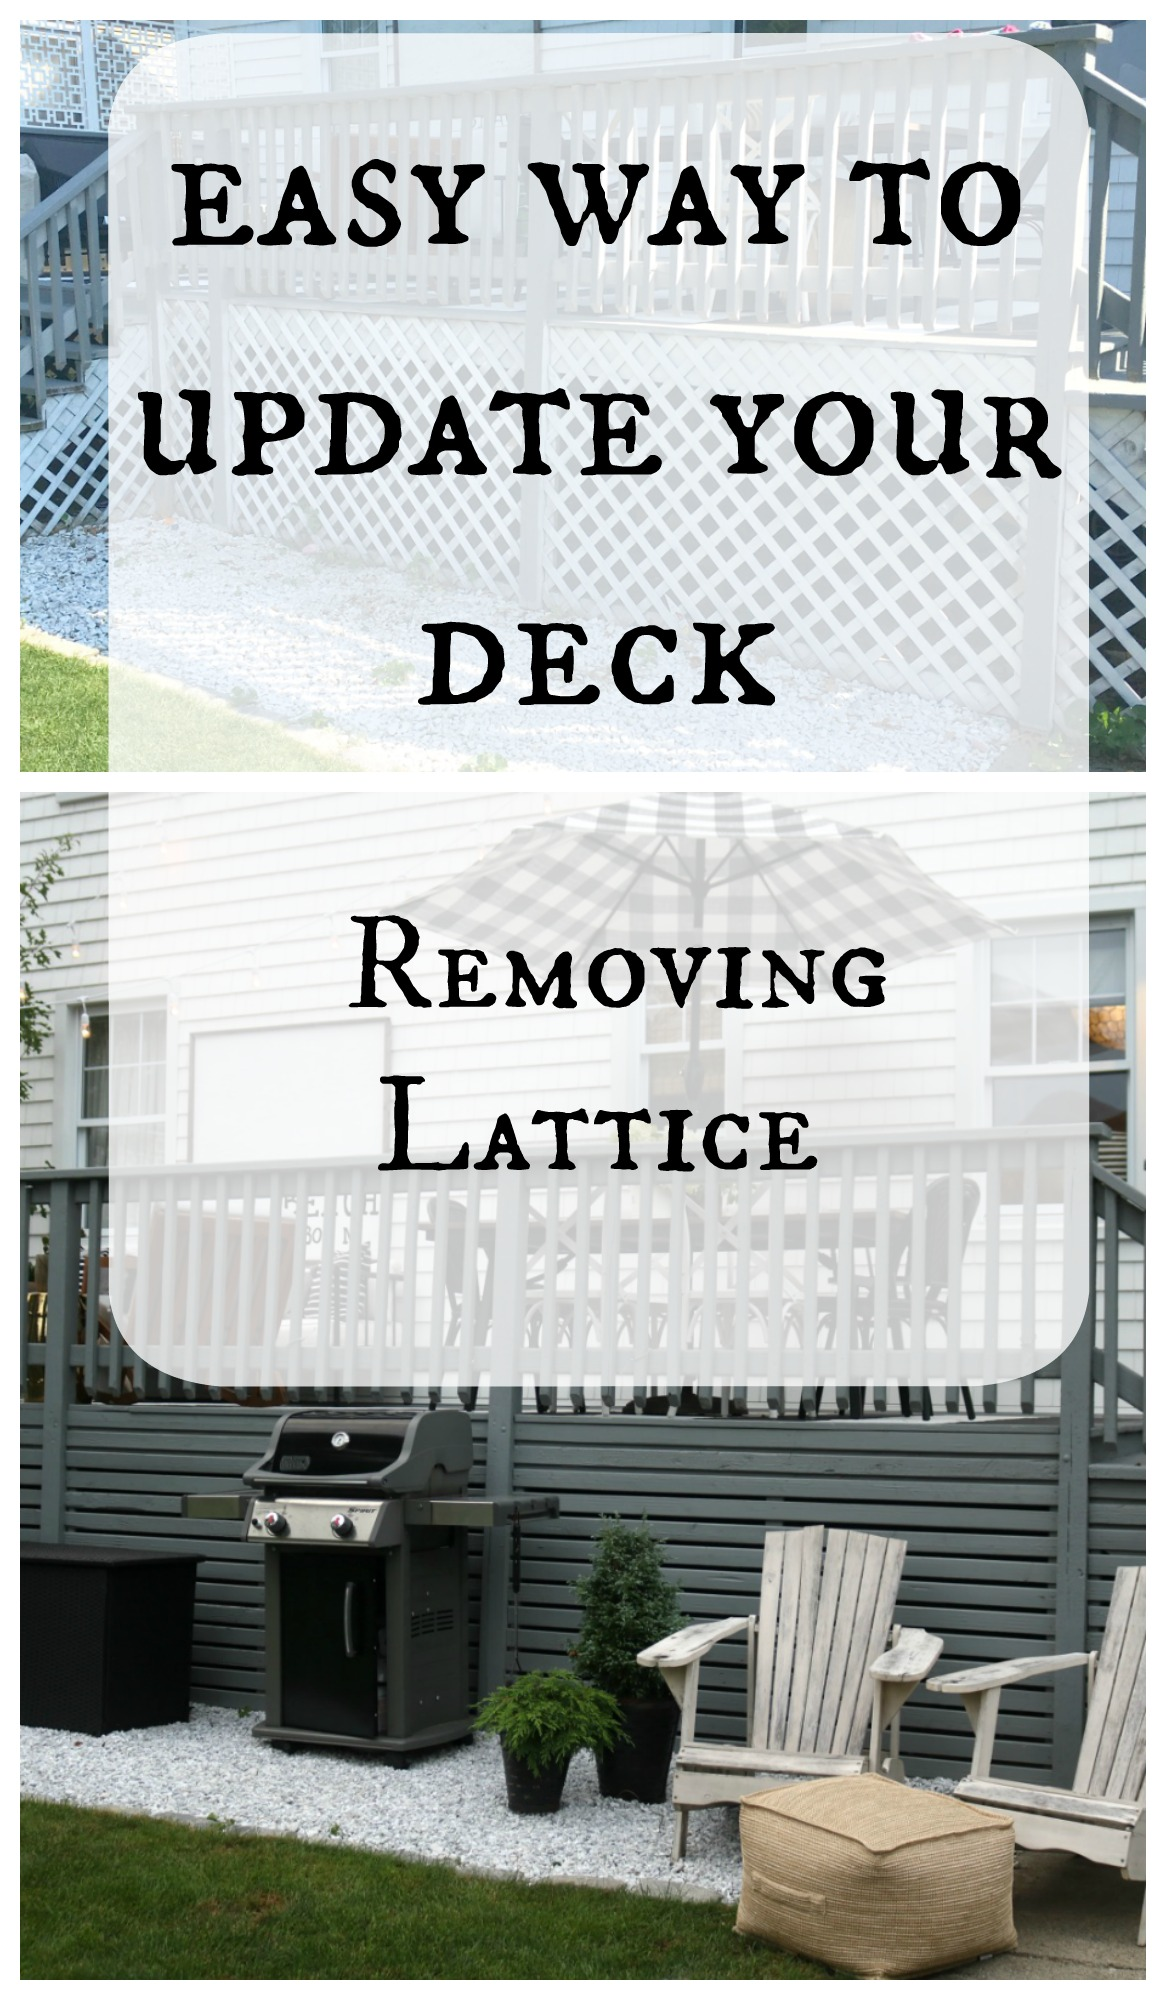 Easy way to update your deck- Removing the Lattice